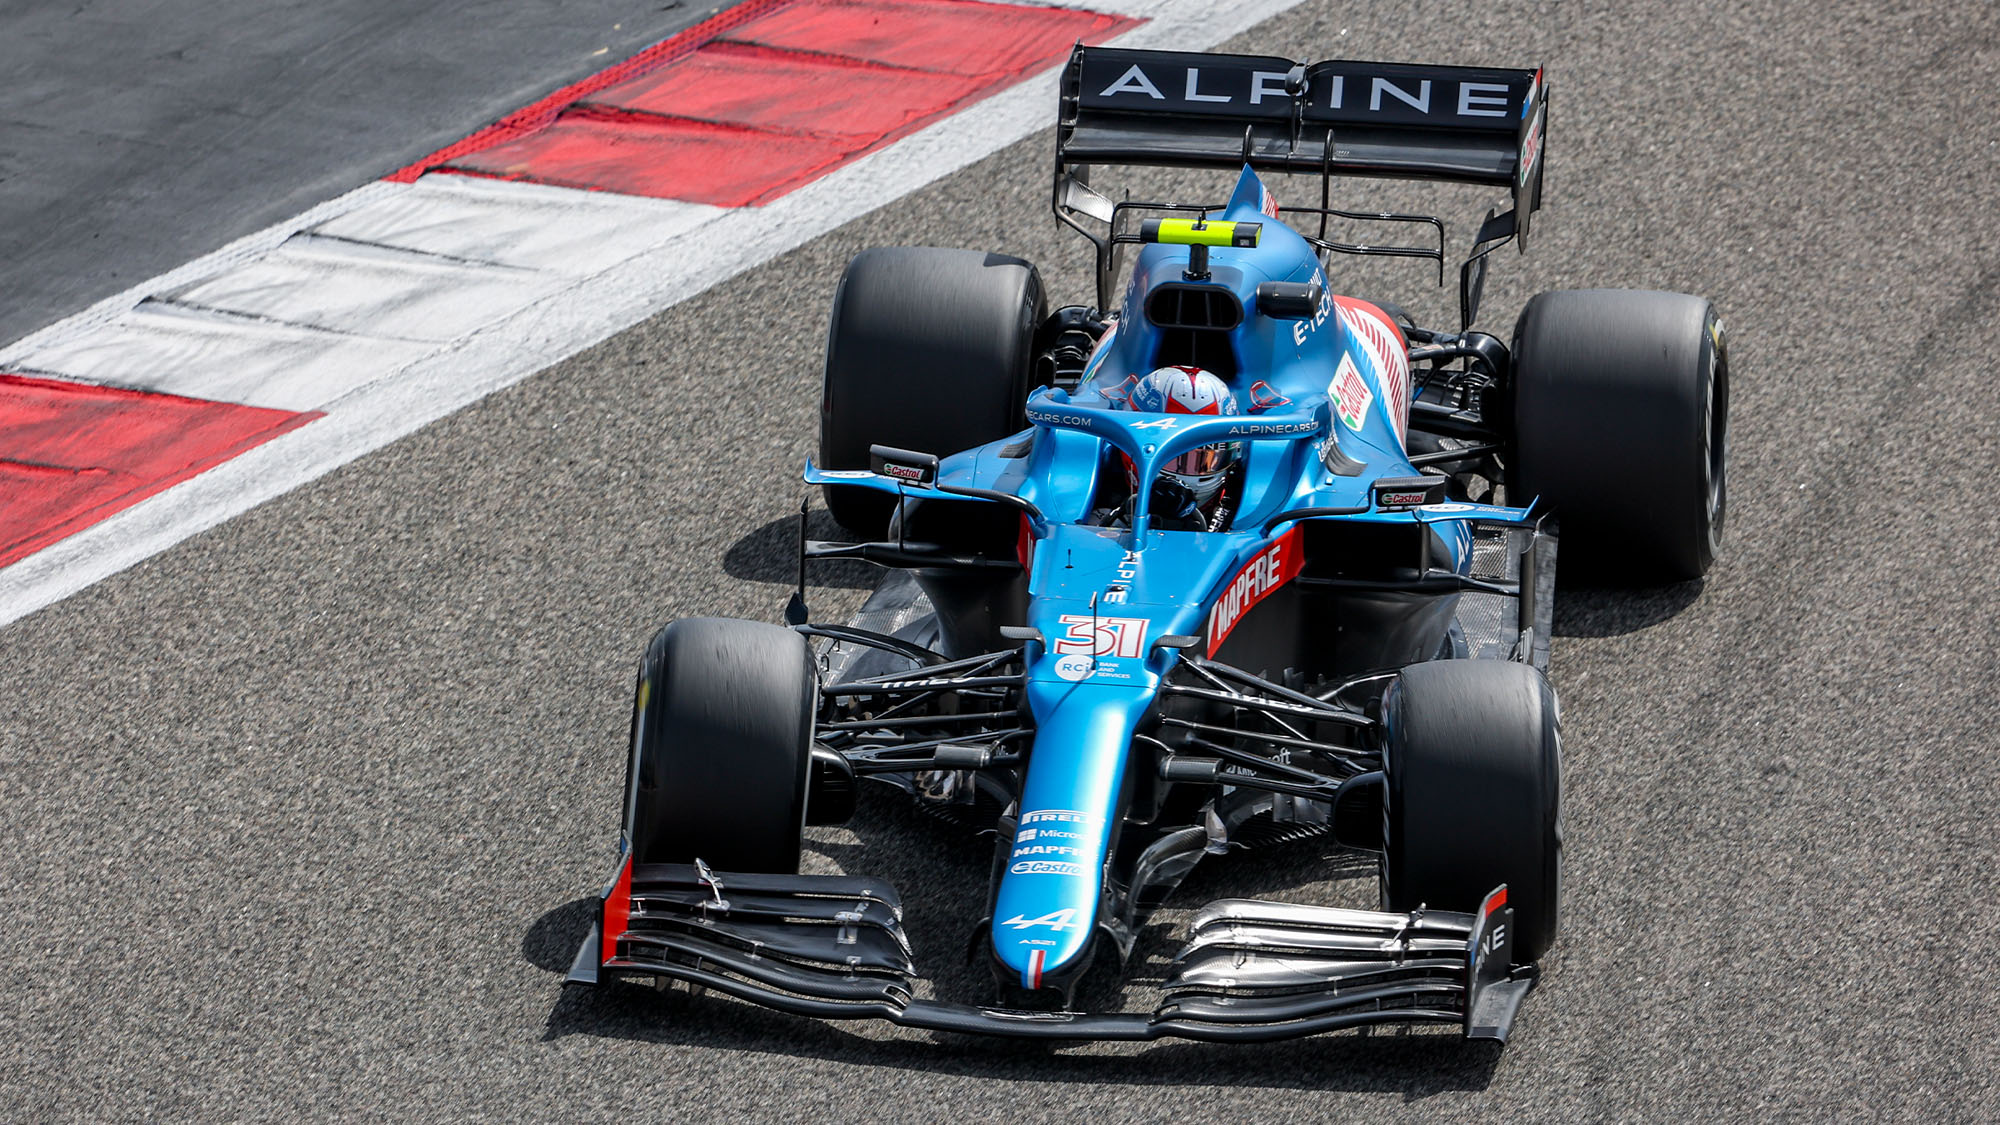 BAHRAIN, BAHRAIN - MARCH 13: Fernando Alonso of Spain driving the (14) Alpine A521 Renault during Day Two of F1 Testing at Bahrain International Circuit on March 13, 2021 in Bahrain, Bahrain. (Photo by Clive Mason/Getty Images)